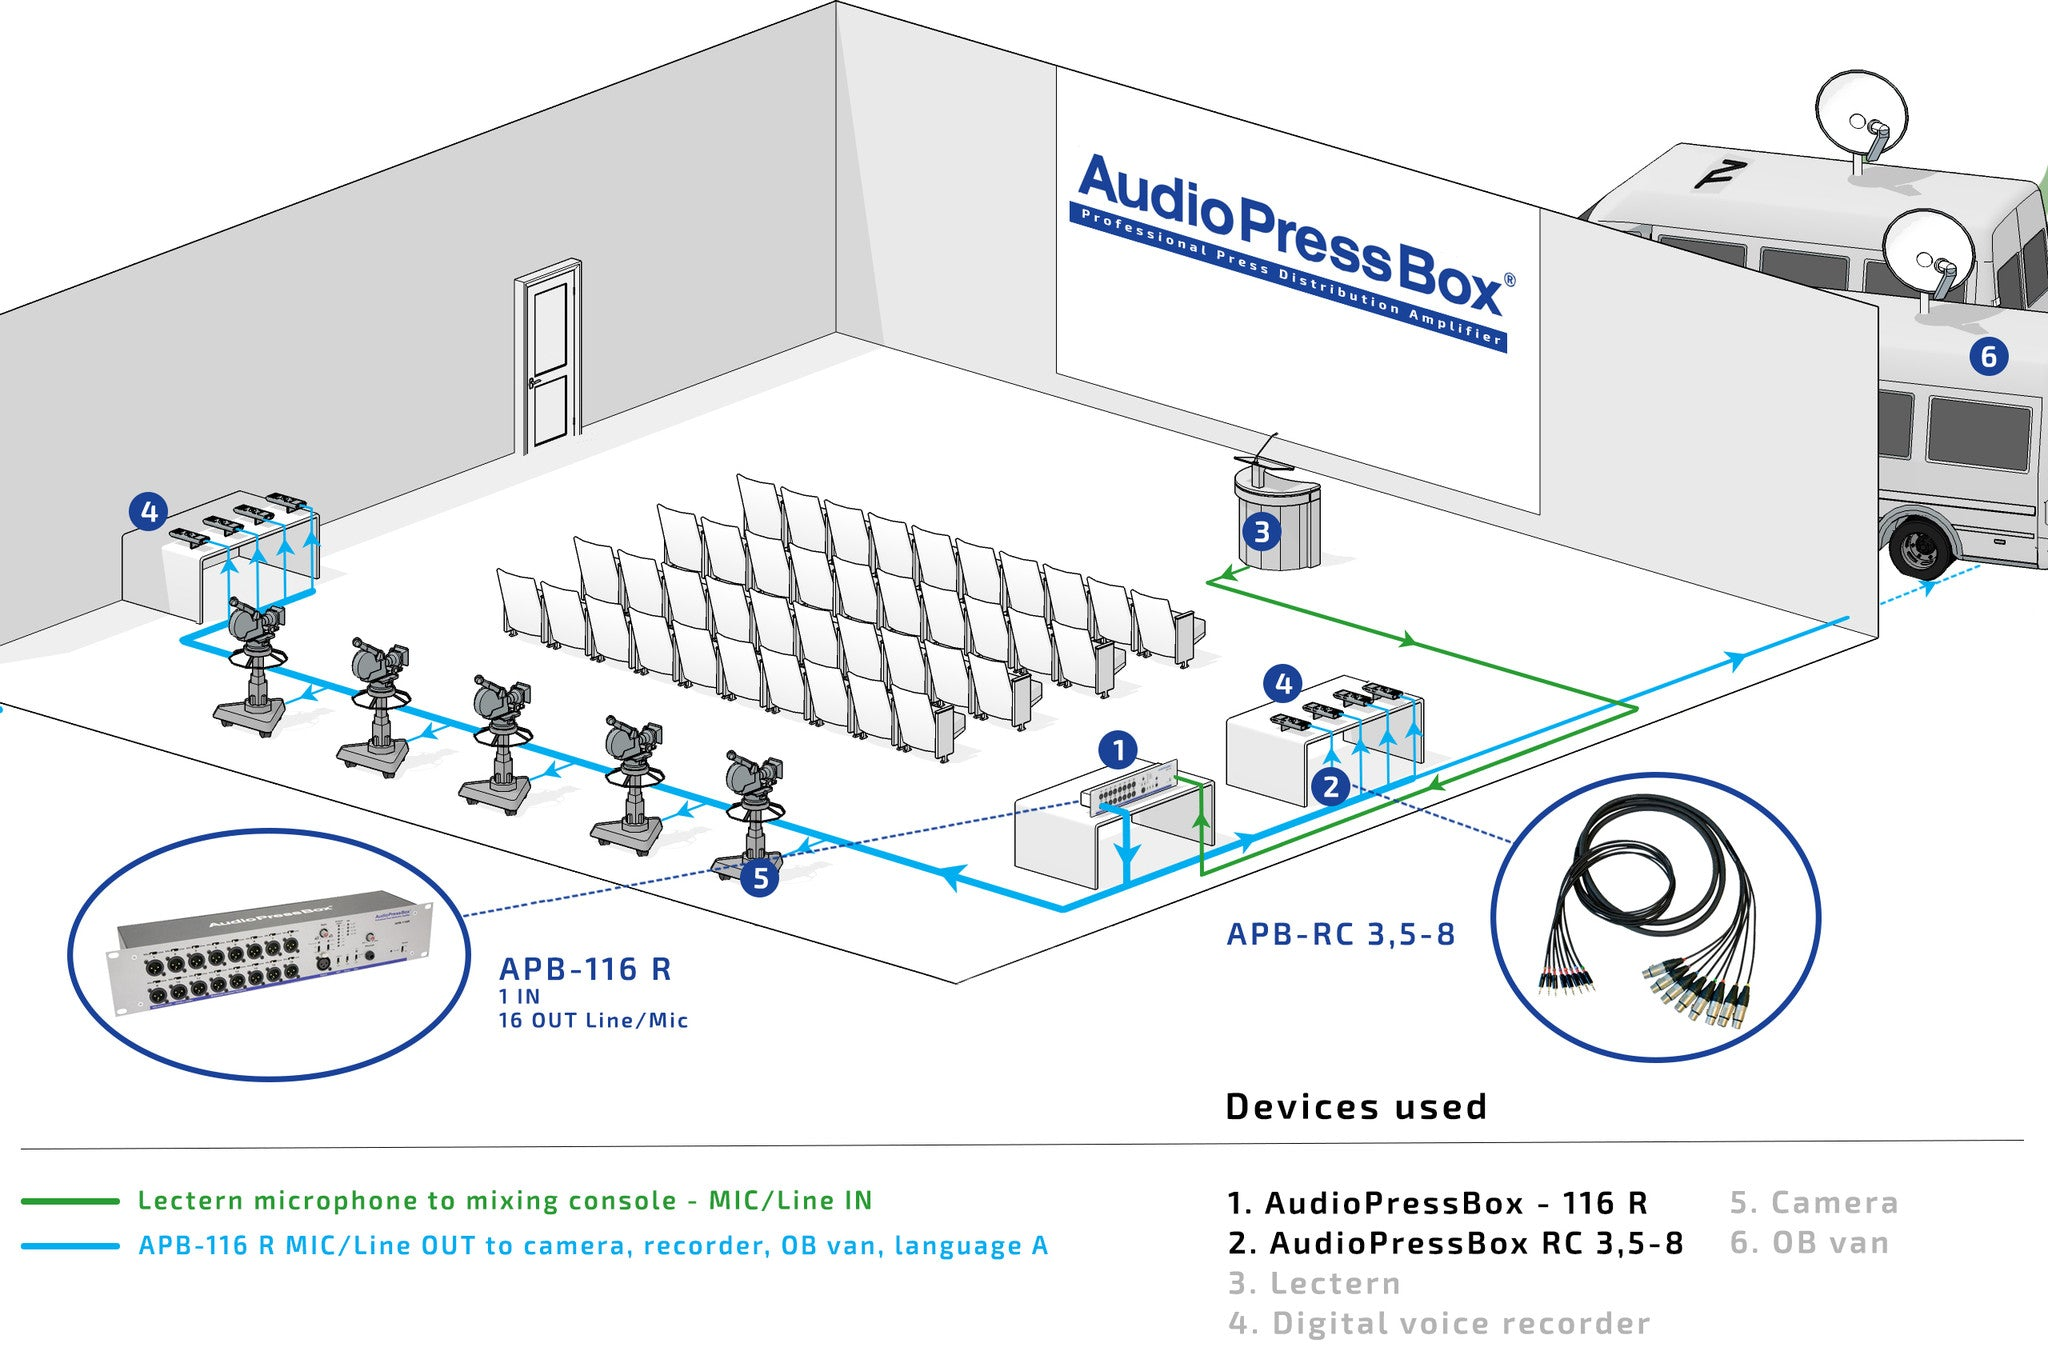 AudioPressBox, Mult Box, PressBox, Mult Box, Press Patch Box, Pressesplitter, APB-116 R.